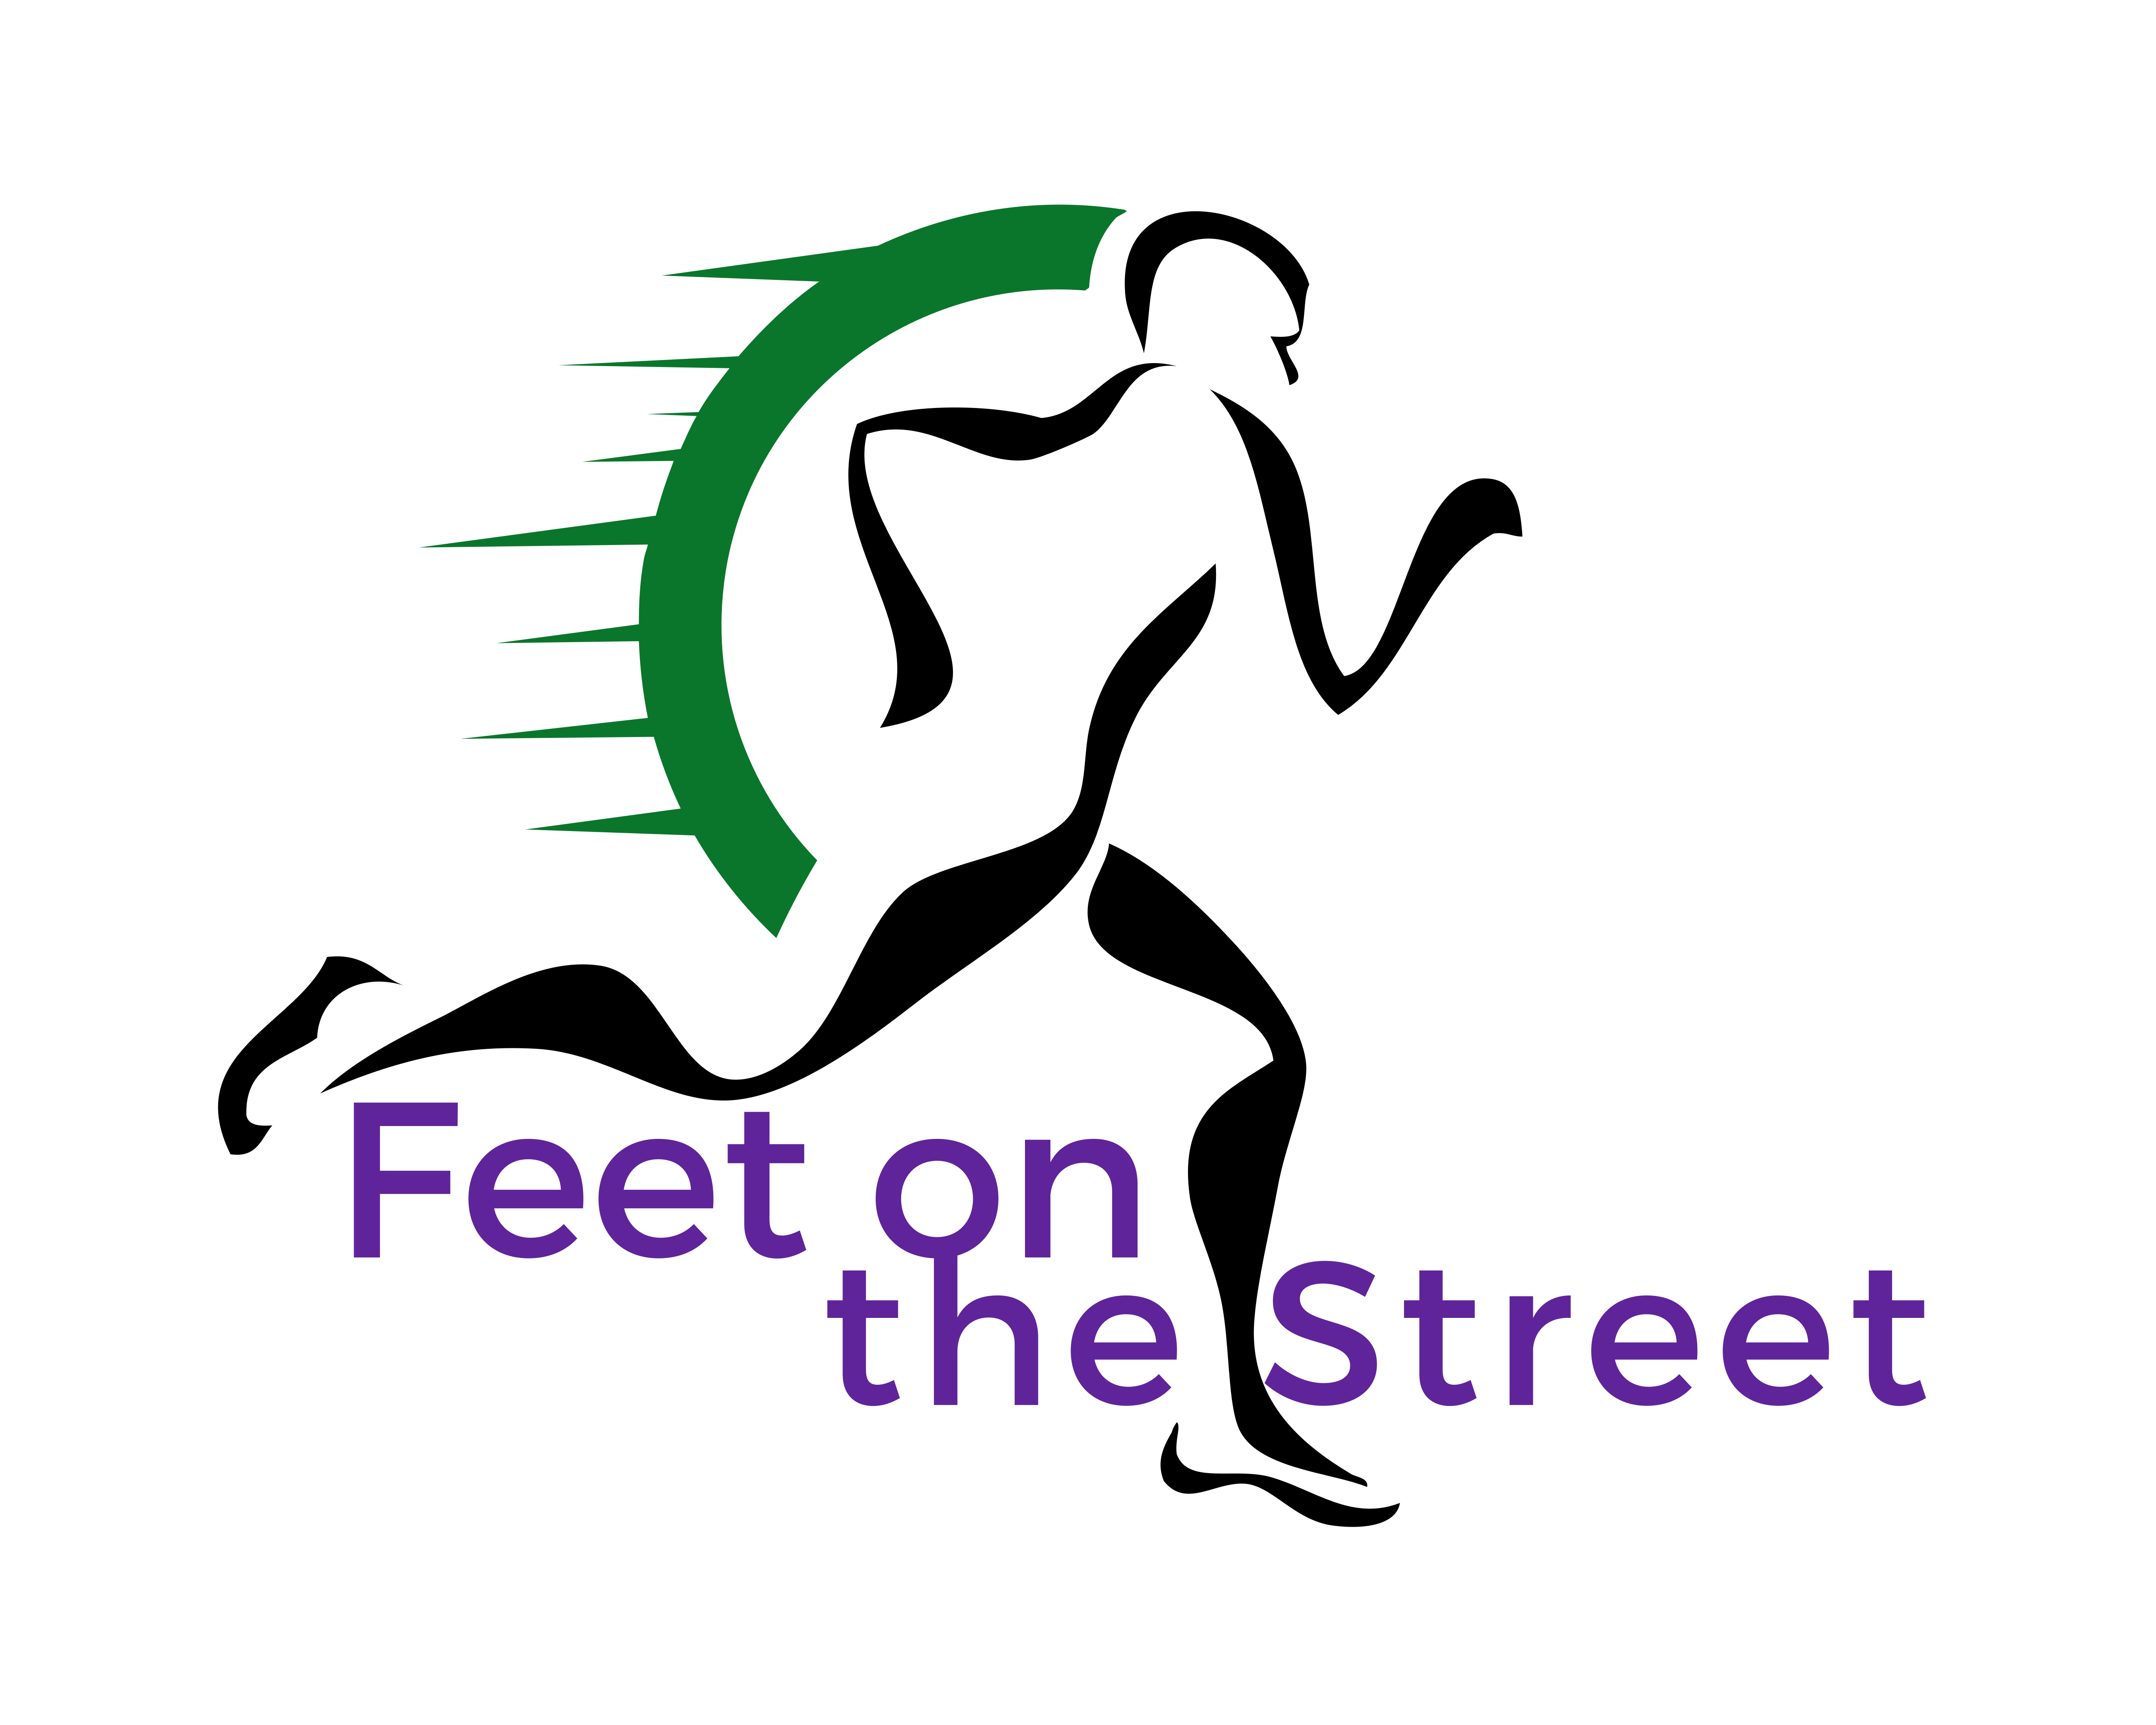 Feet on the Street 2K Walk & 5K Run 2016